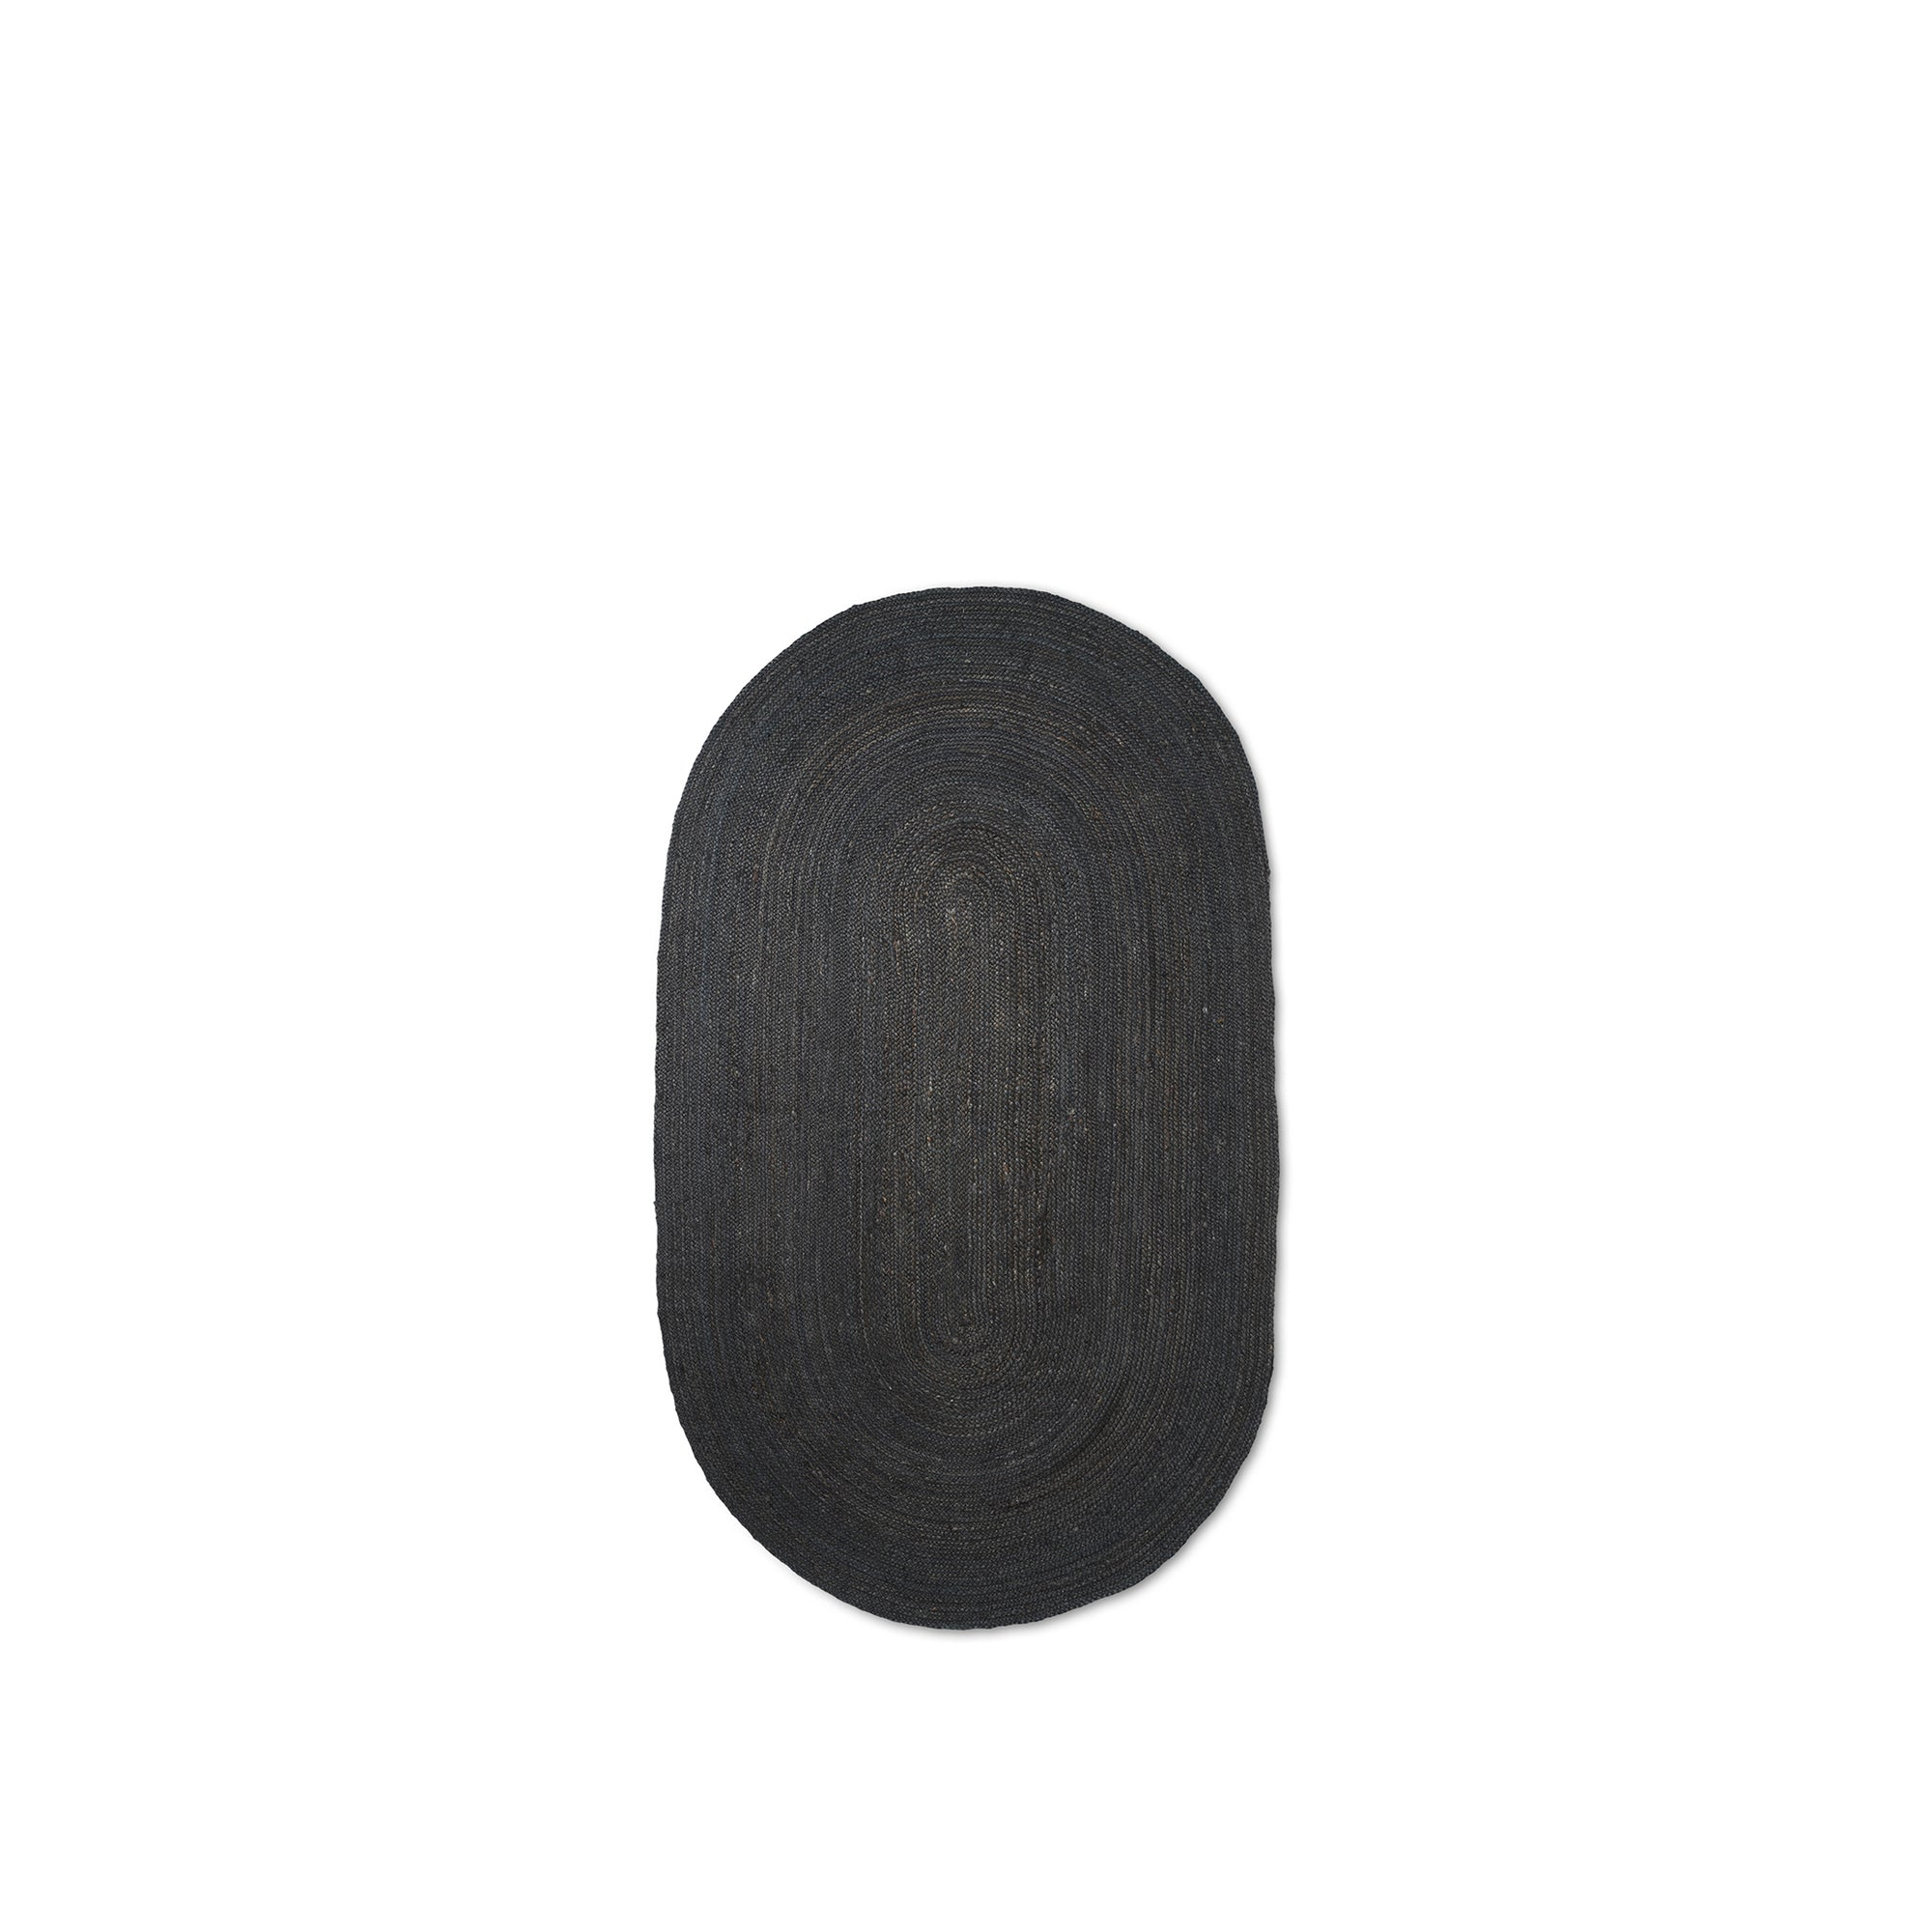 Ferm Living Eternal Oval Jute Rug Small: Black - The Union Project